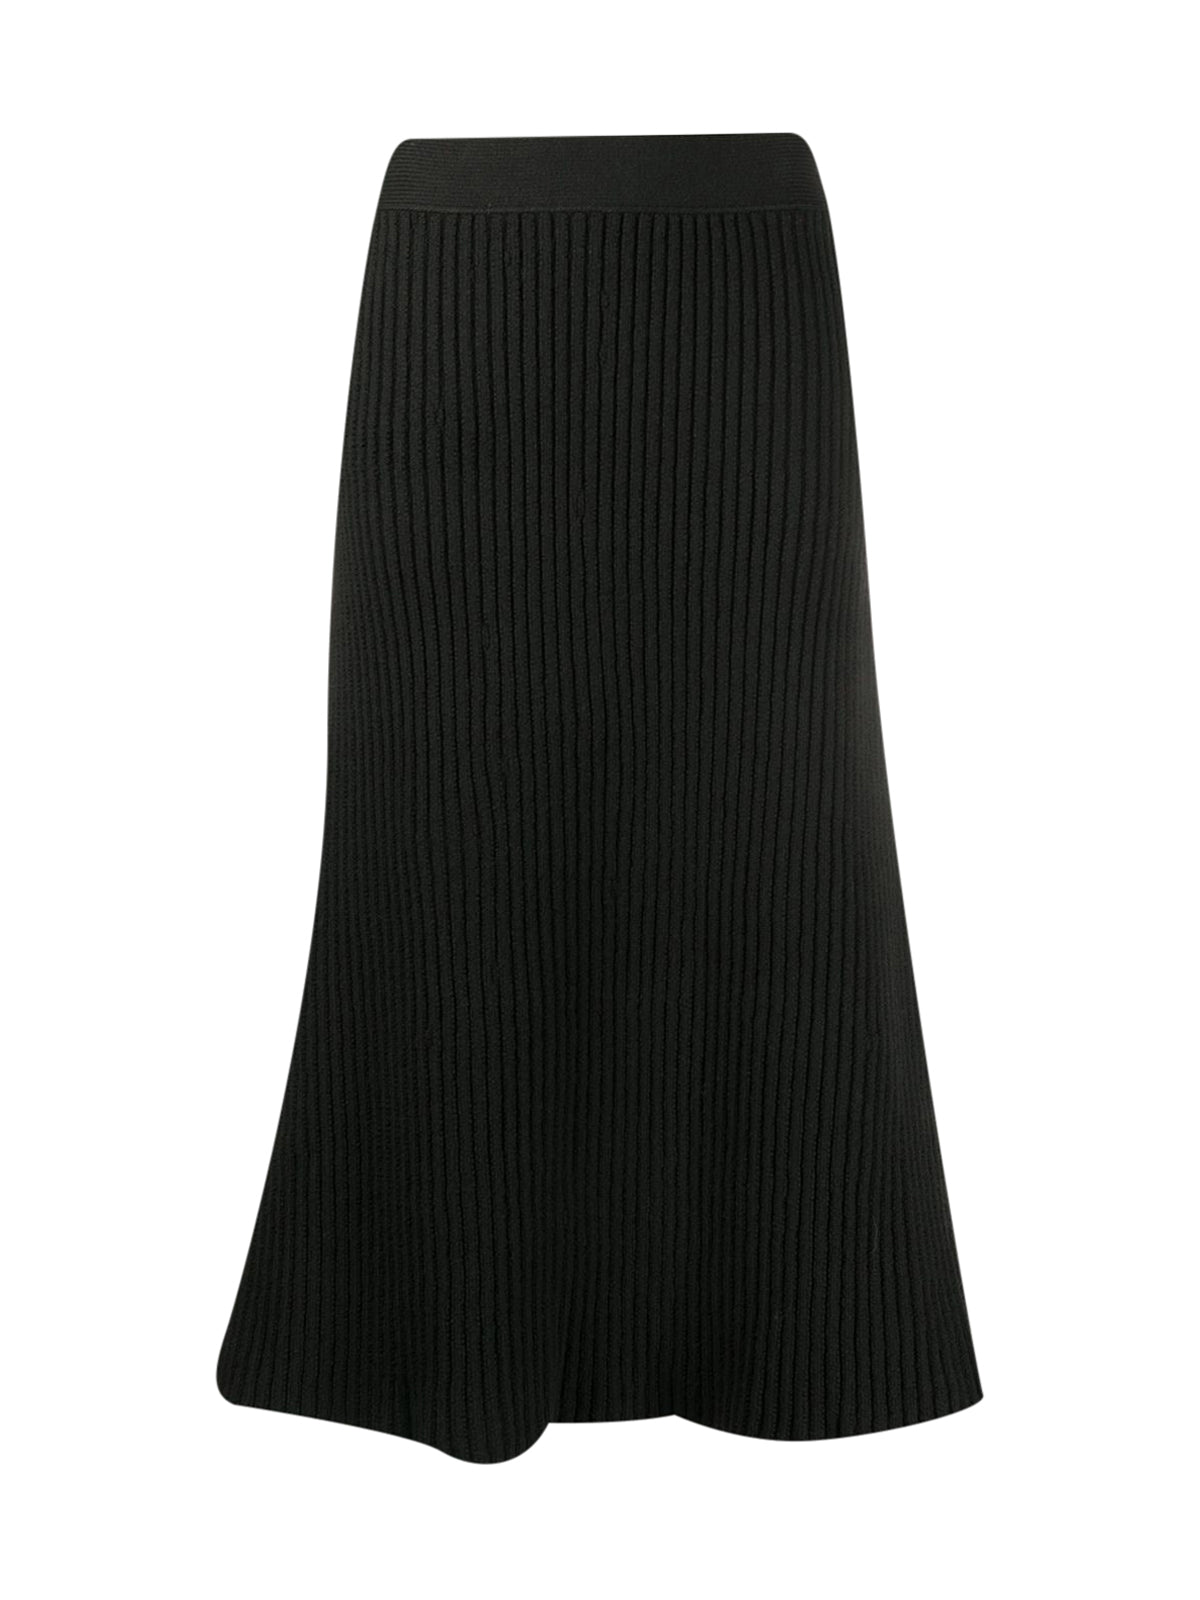 ribbed-knit midi skirt